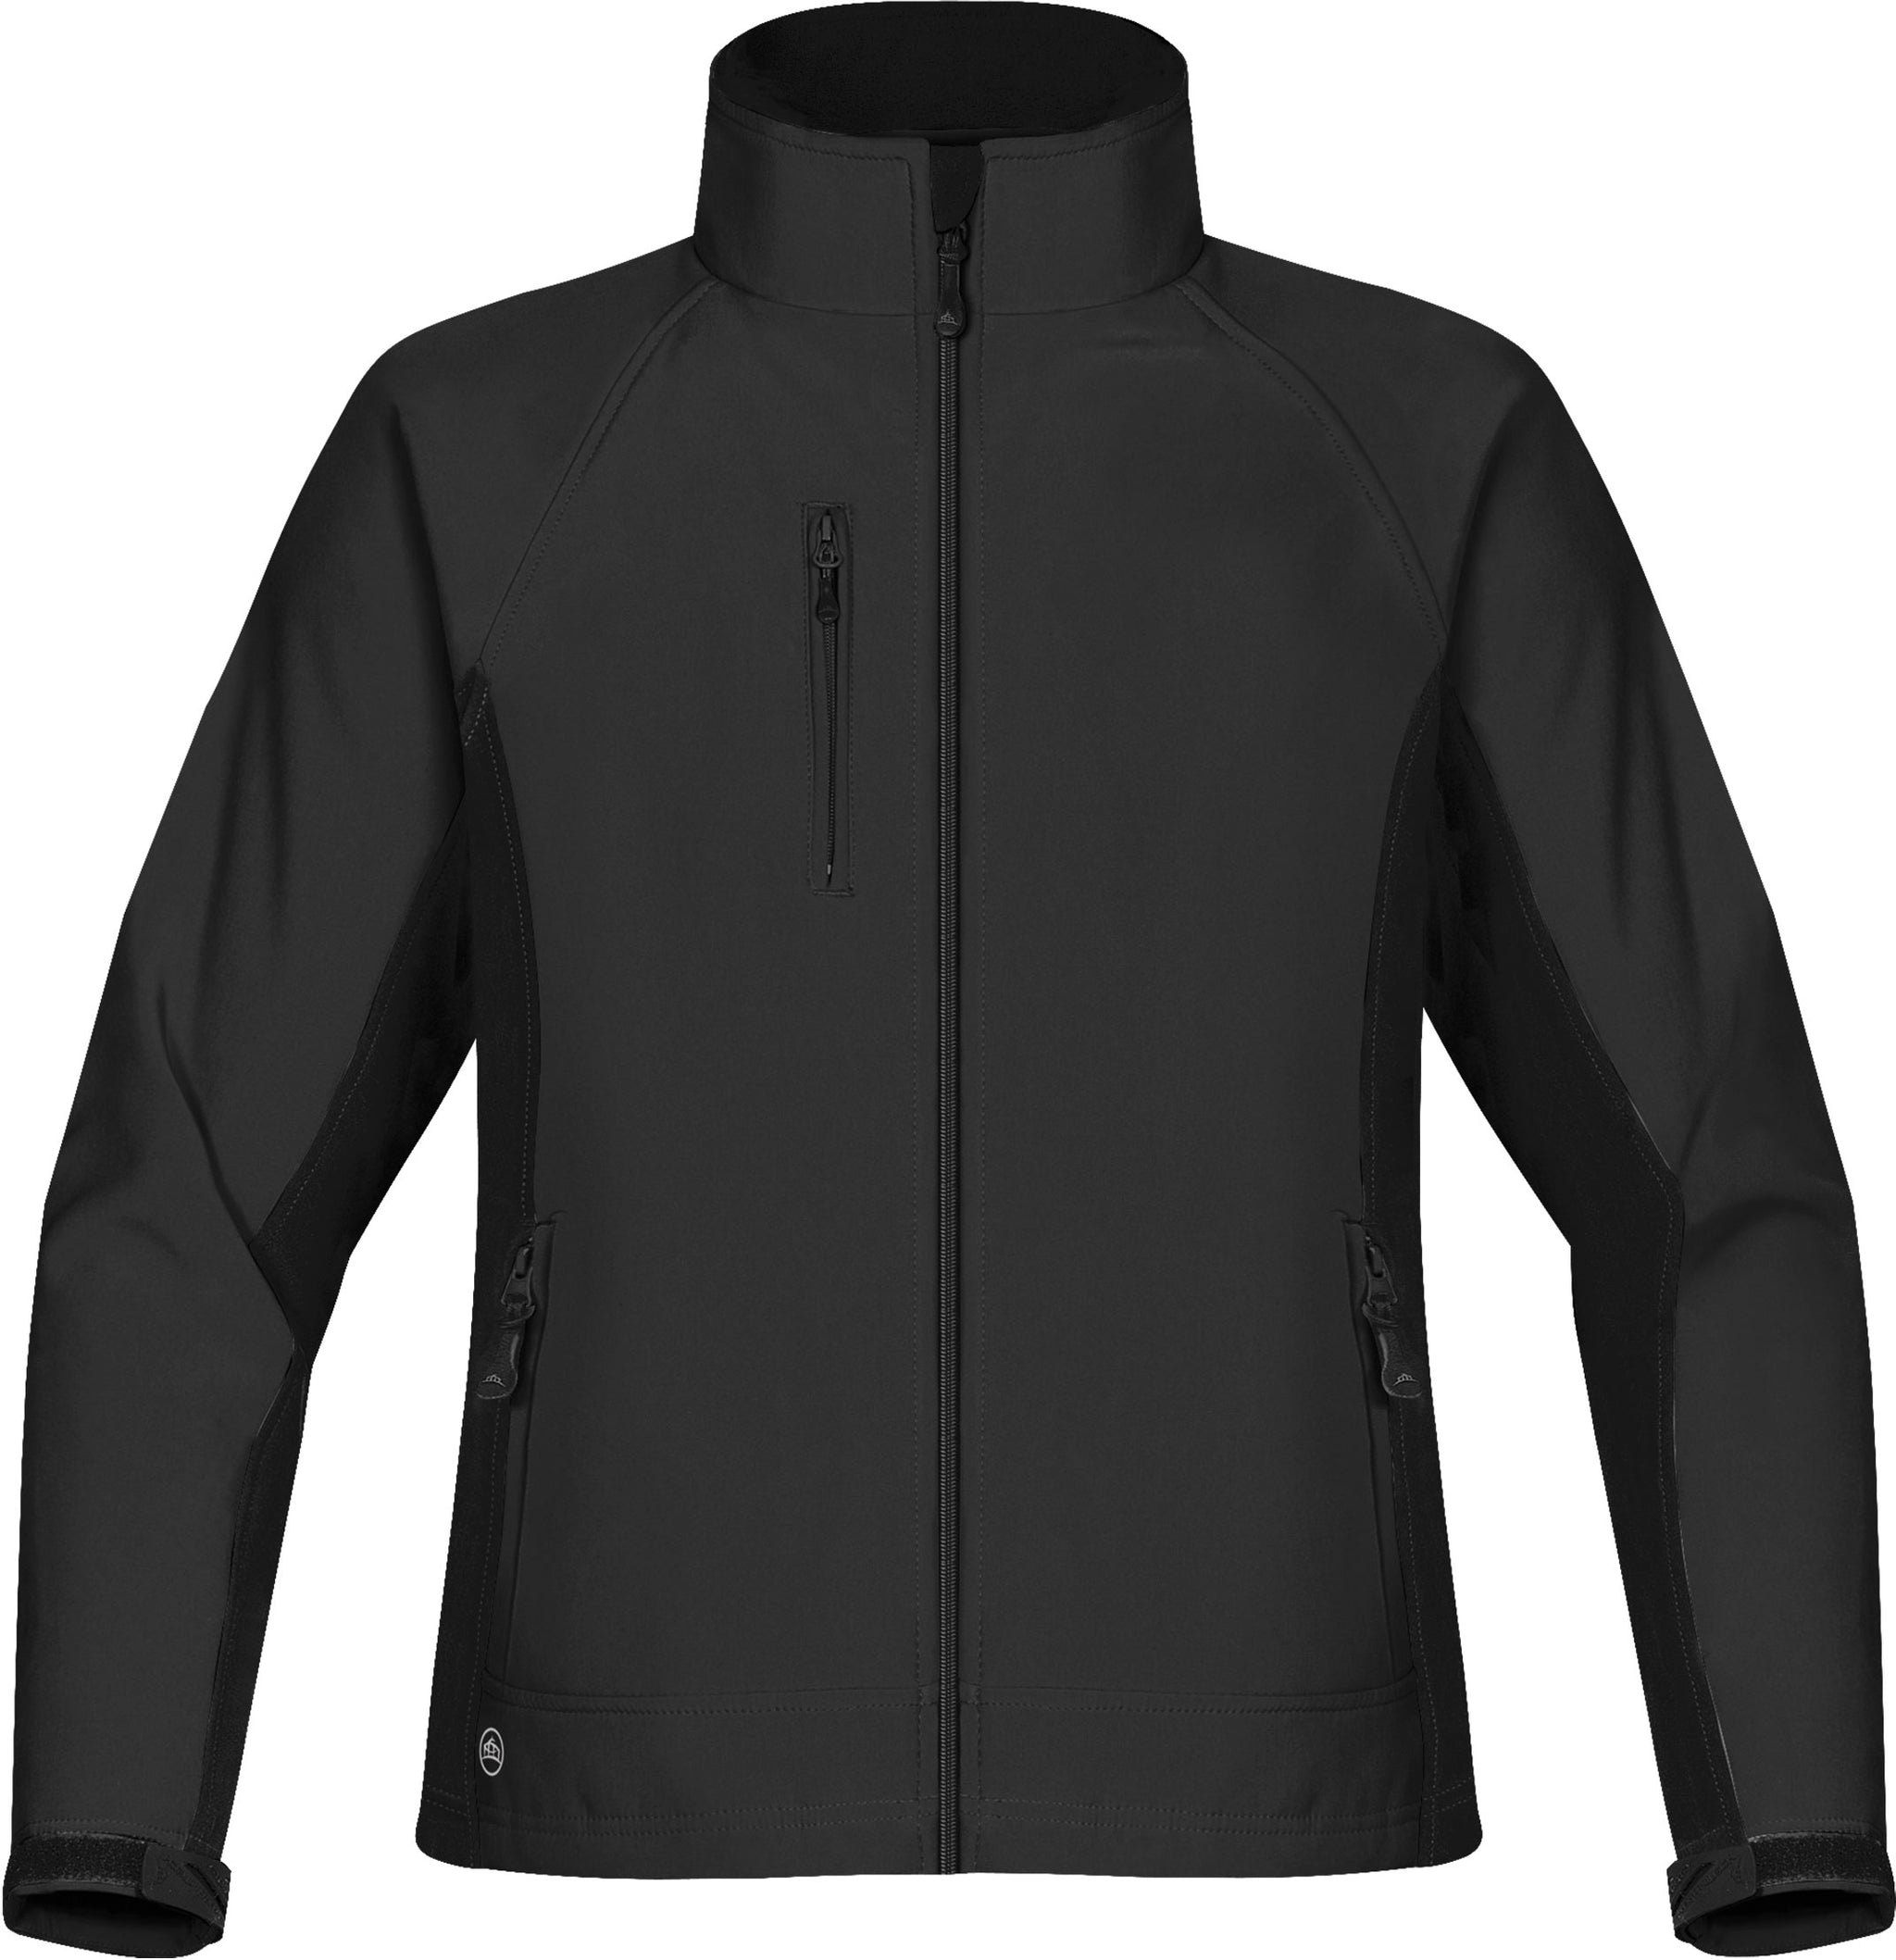 STORMTECH LADIES CREW BONDED THERMAL SHELL JACKET